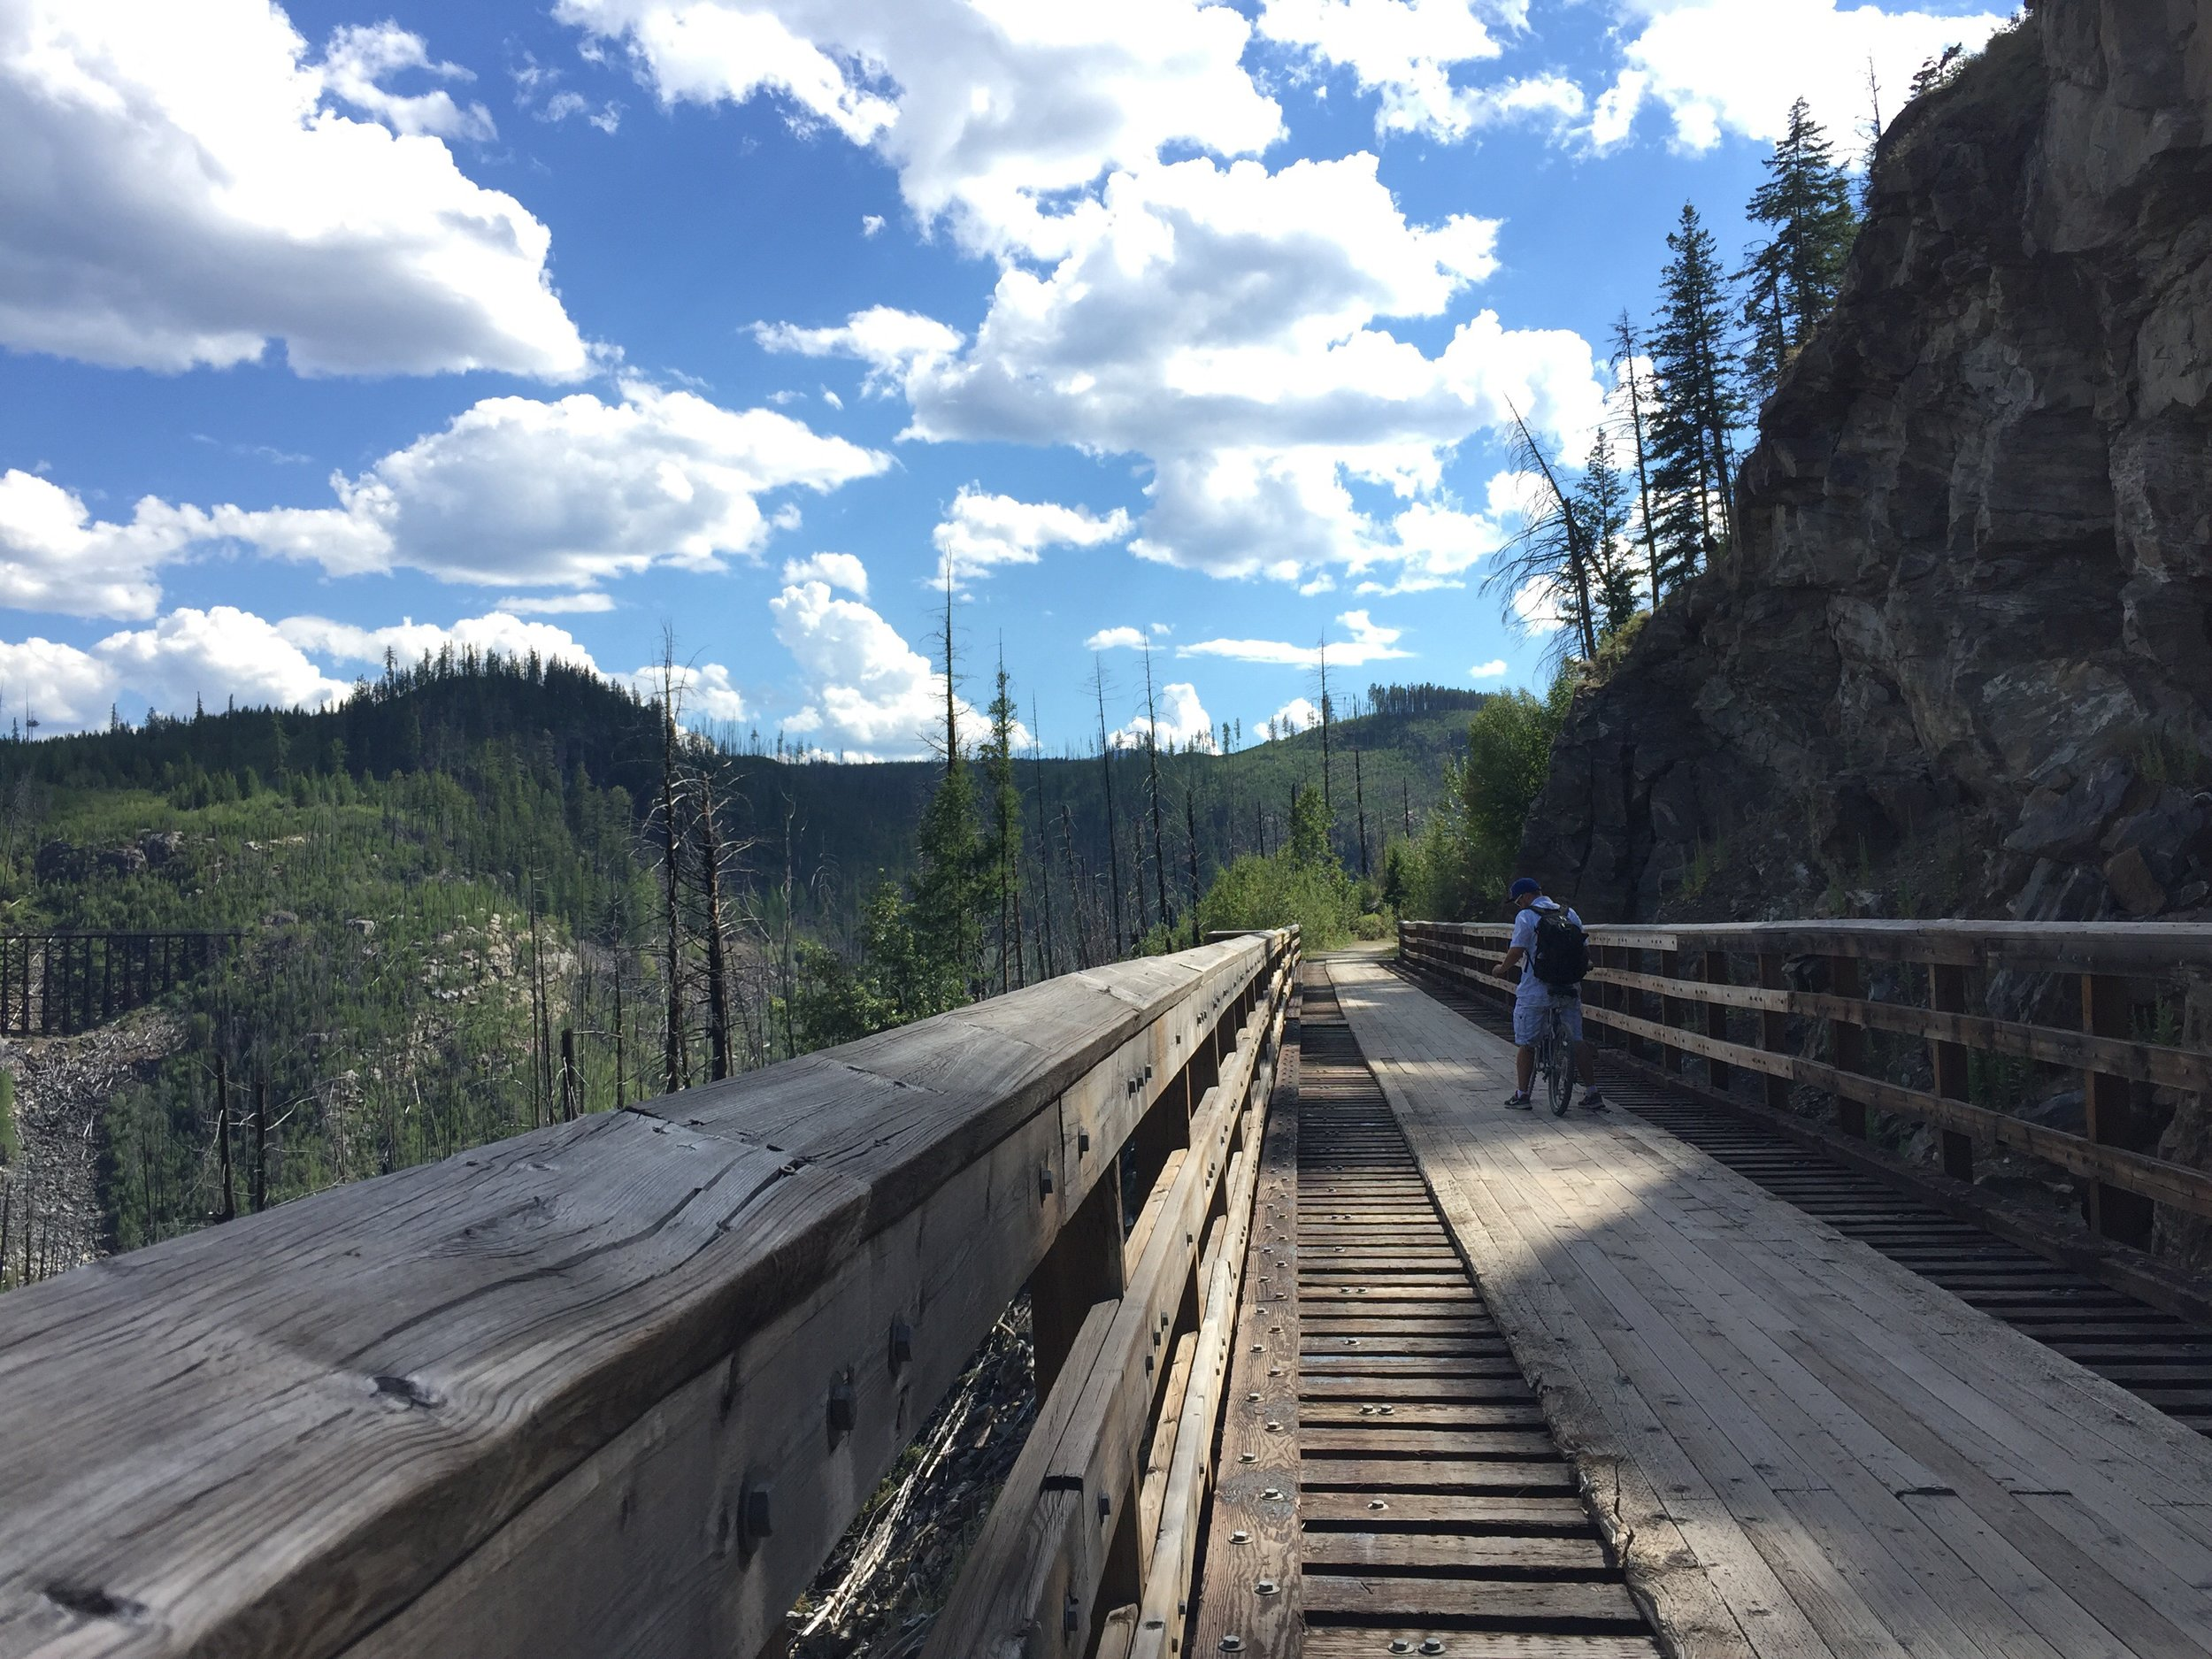 Myra/ Kettle Valley Trestle Trail